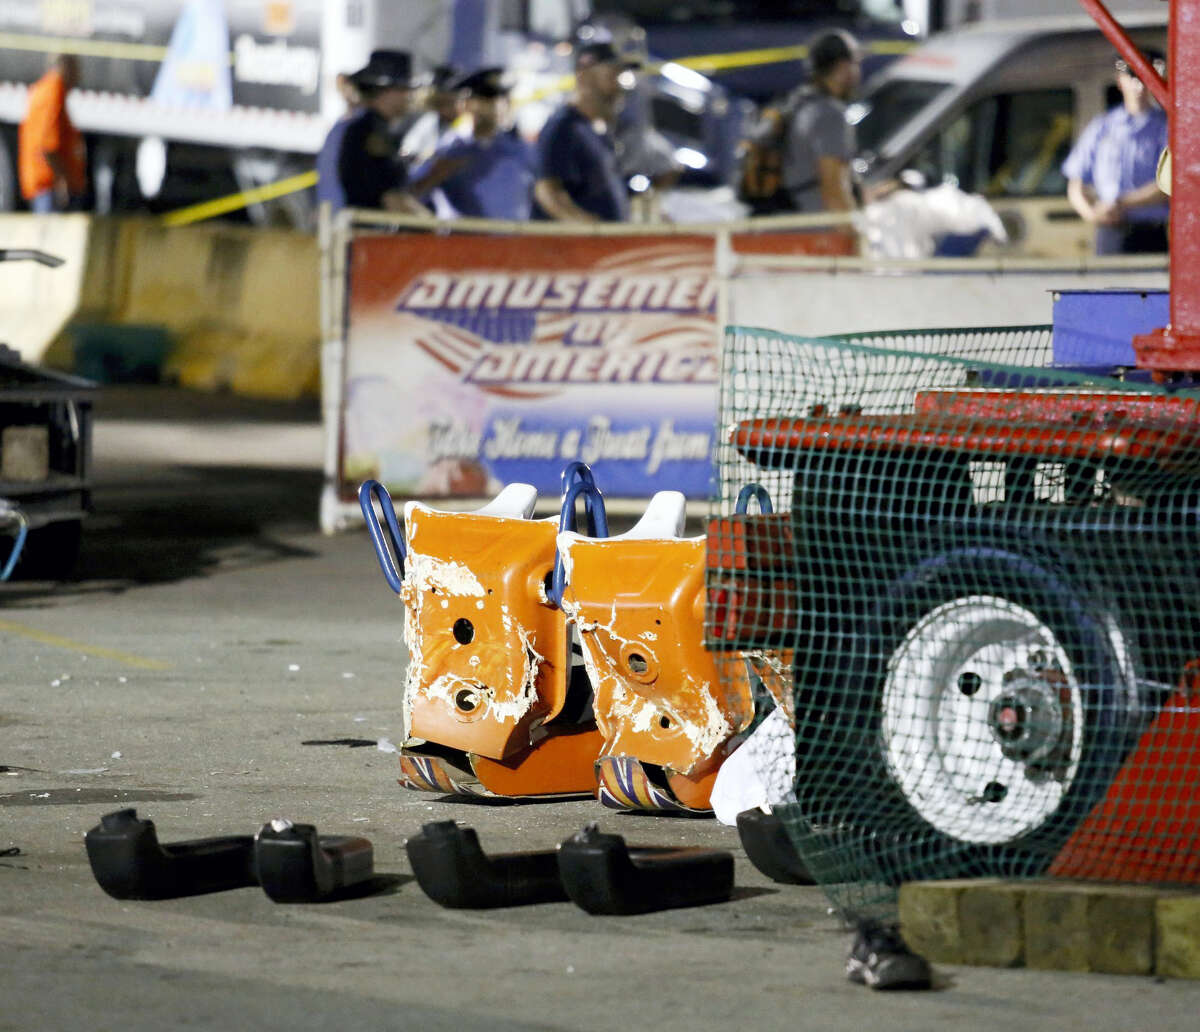 Authorities stand near damaged chairs of the Fire Ball amusement ride after the ride malfunctioned injuring several at the Ohio State Fair, Wednesday, July 26, 2017, in Columbus, Ohio. Some of the victims were thrown from the ride when it malfunctioned Wednesday night, said Columbus Fire Battalion Chief Steve Martin. (Barbara J. Perenic/The Columbus Dispatch via AP)